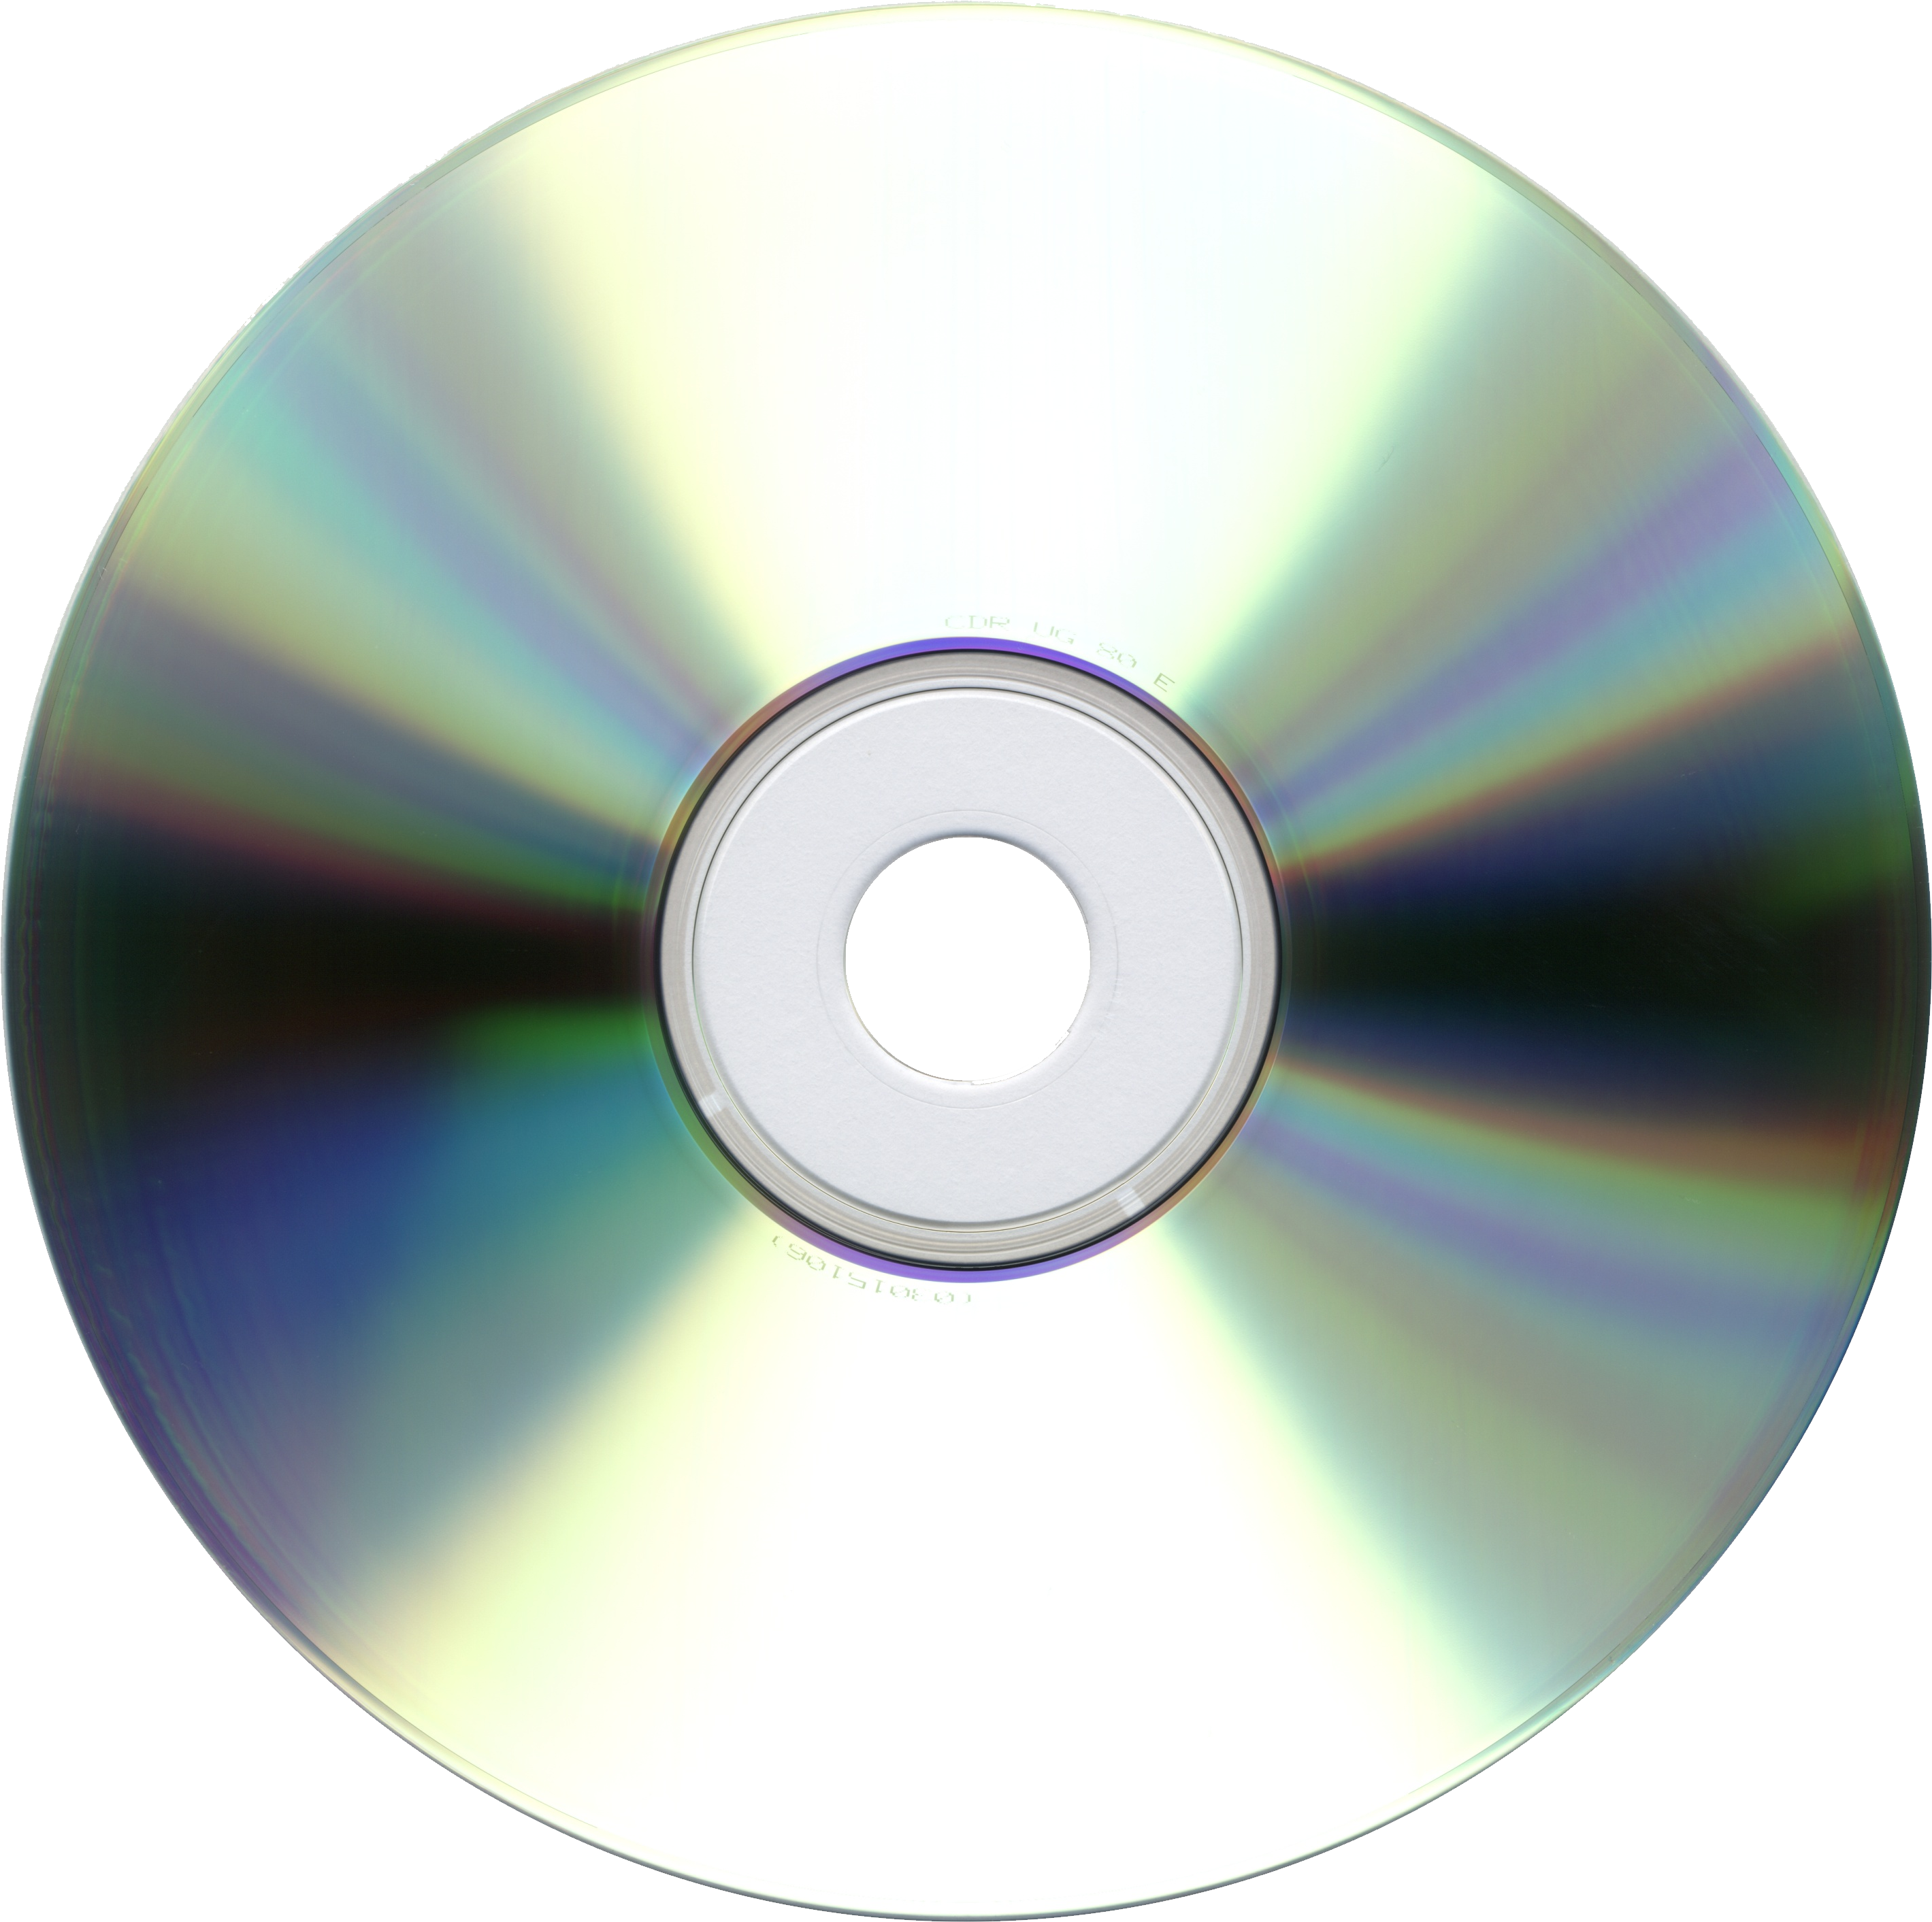 Cd image png. Dvd images free download